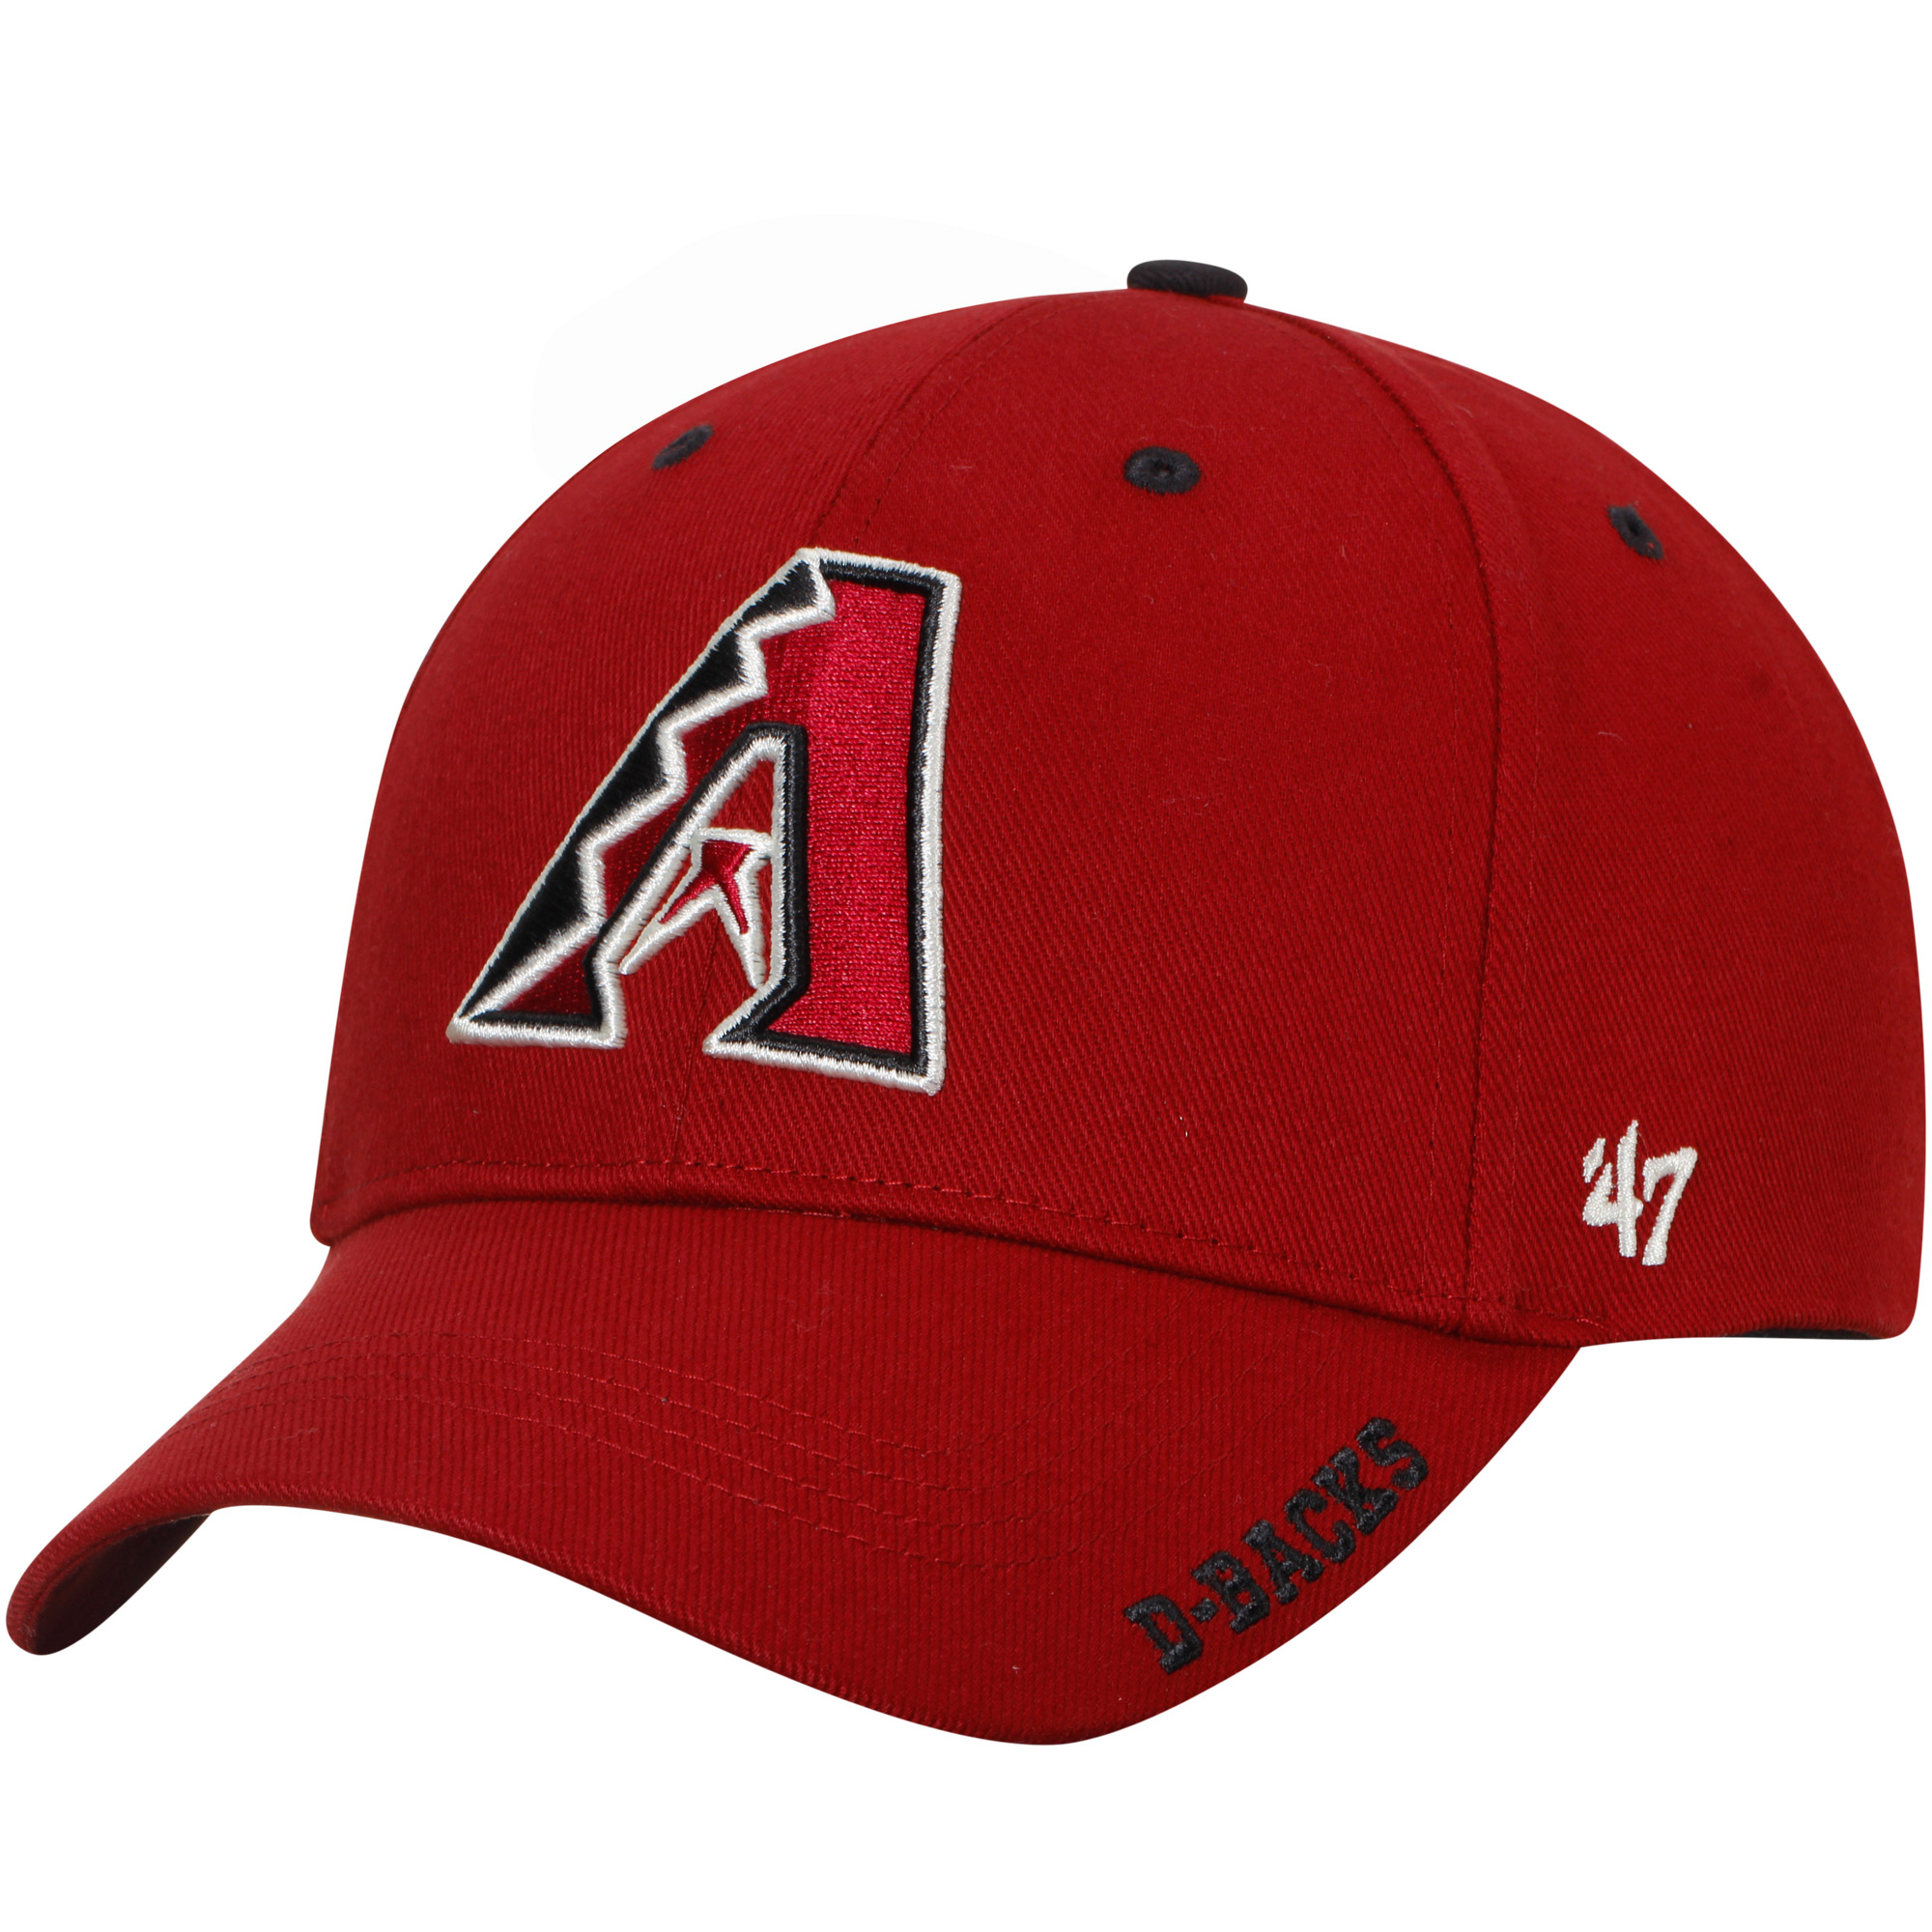 Arizona Diamondbacks '47 Frost Structured MVP Adjustable Hat - Red - OSFA